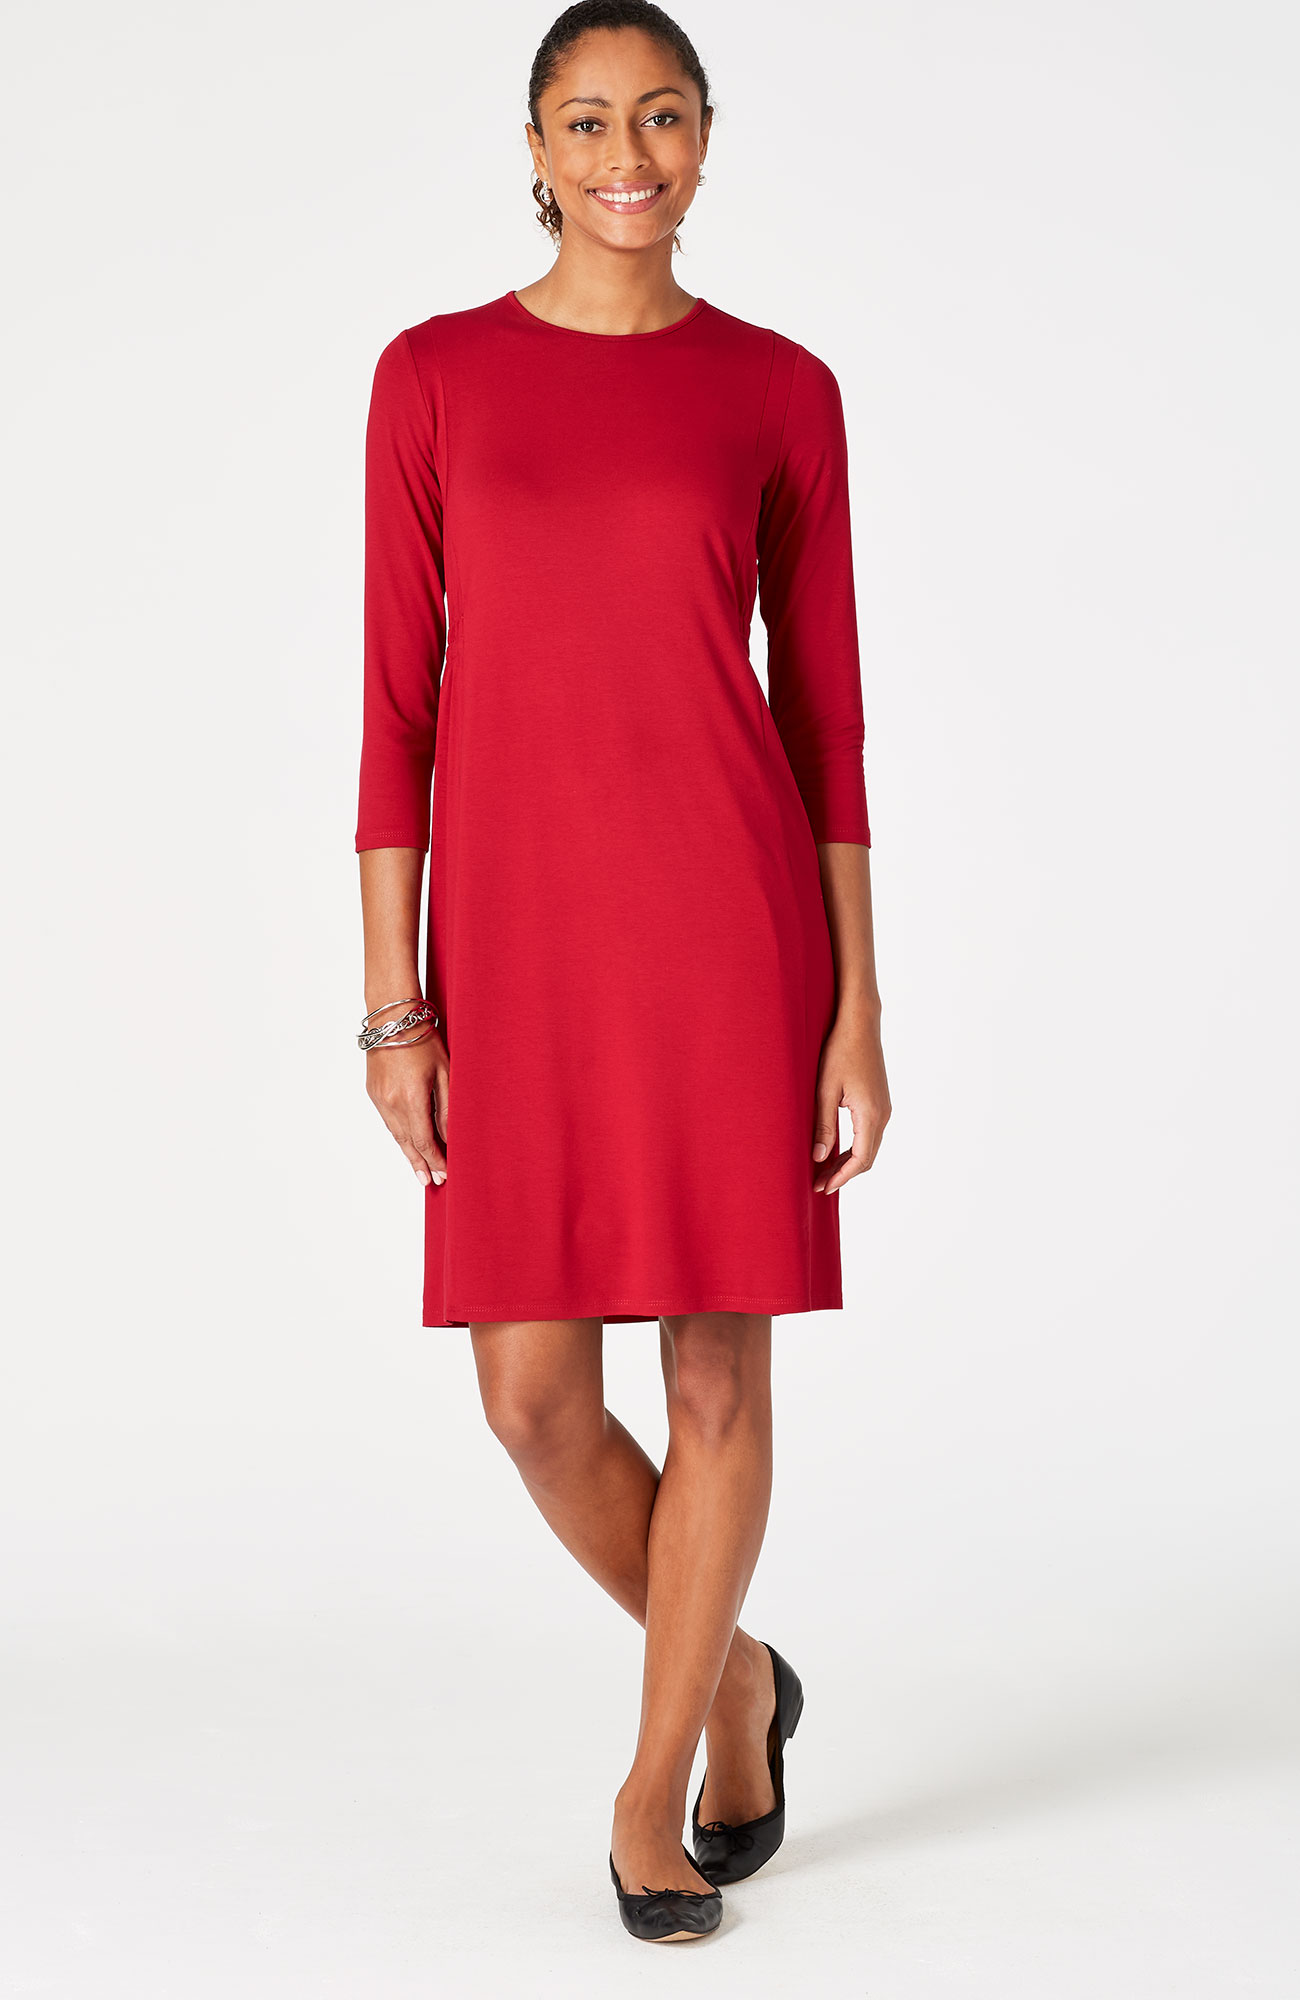 Wearever 3/4-sleeve crew-neck dress